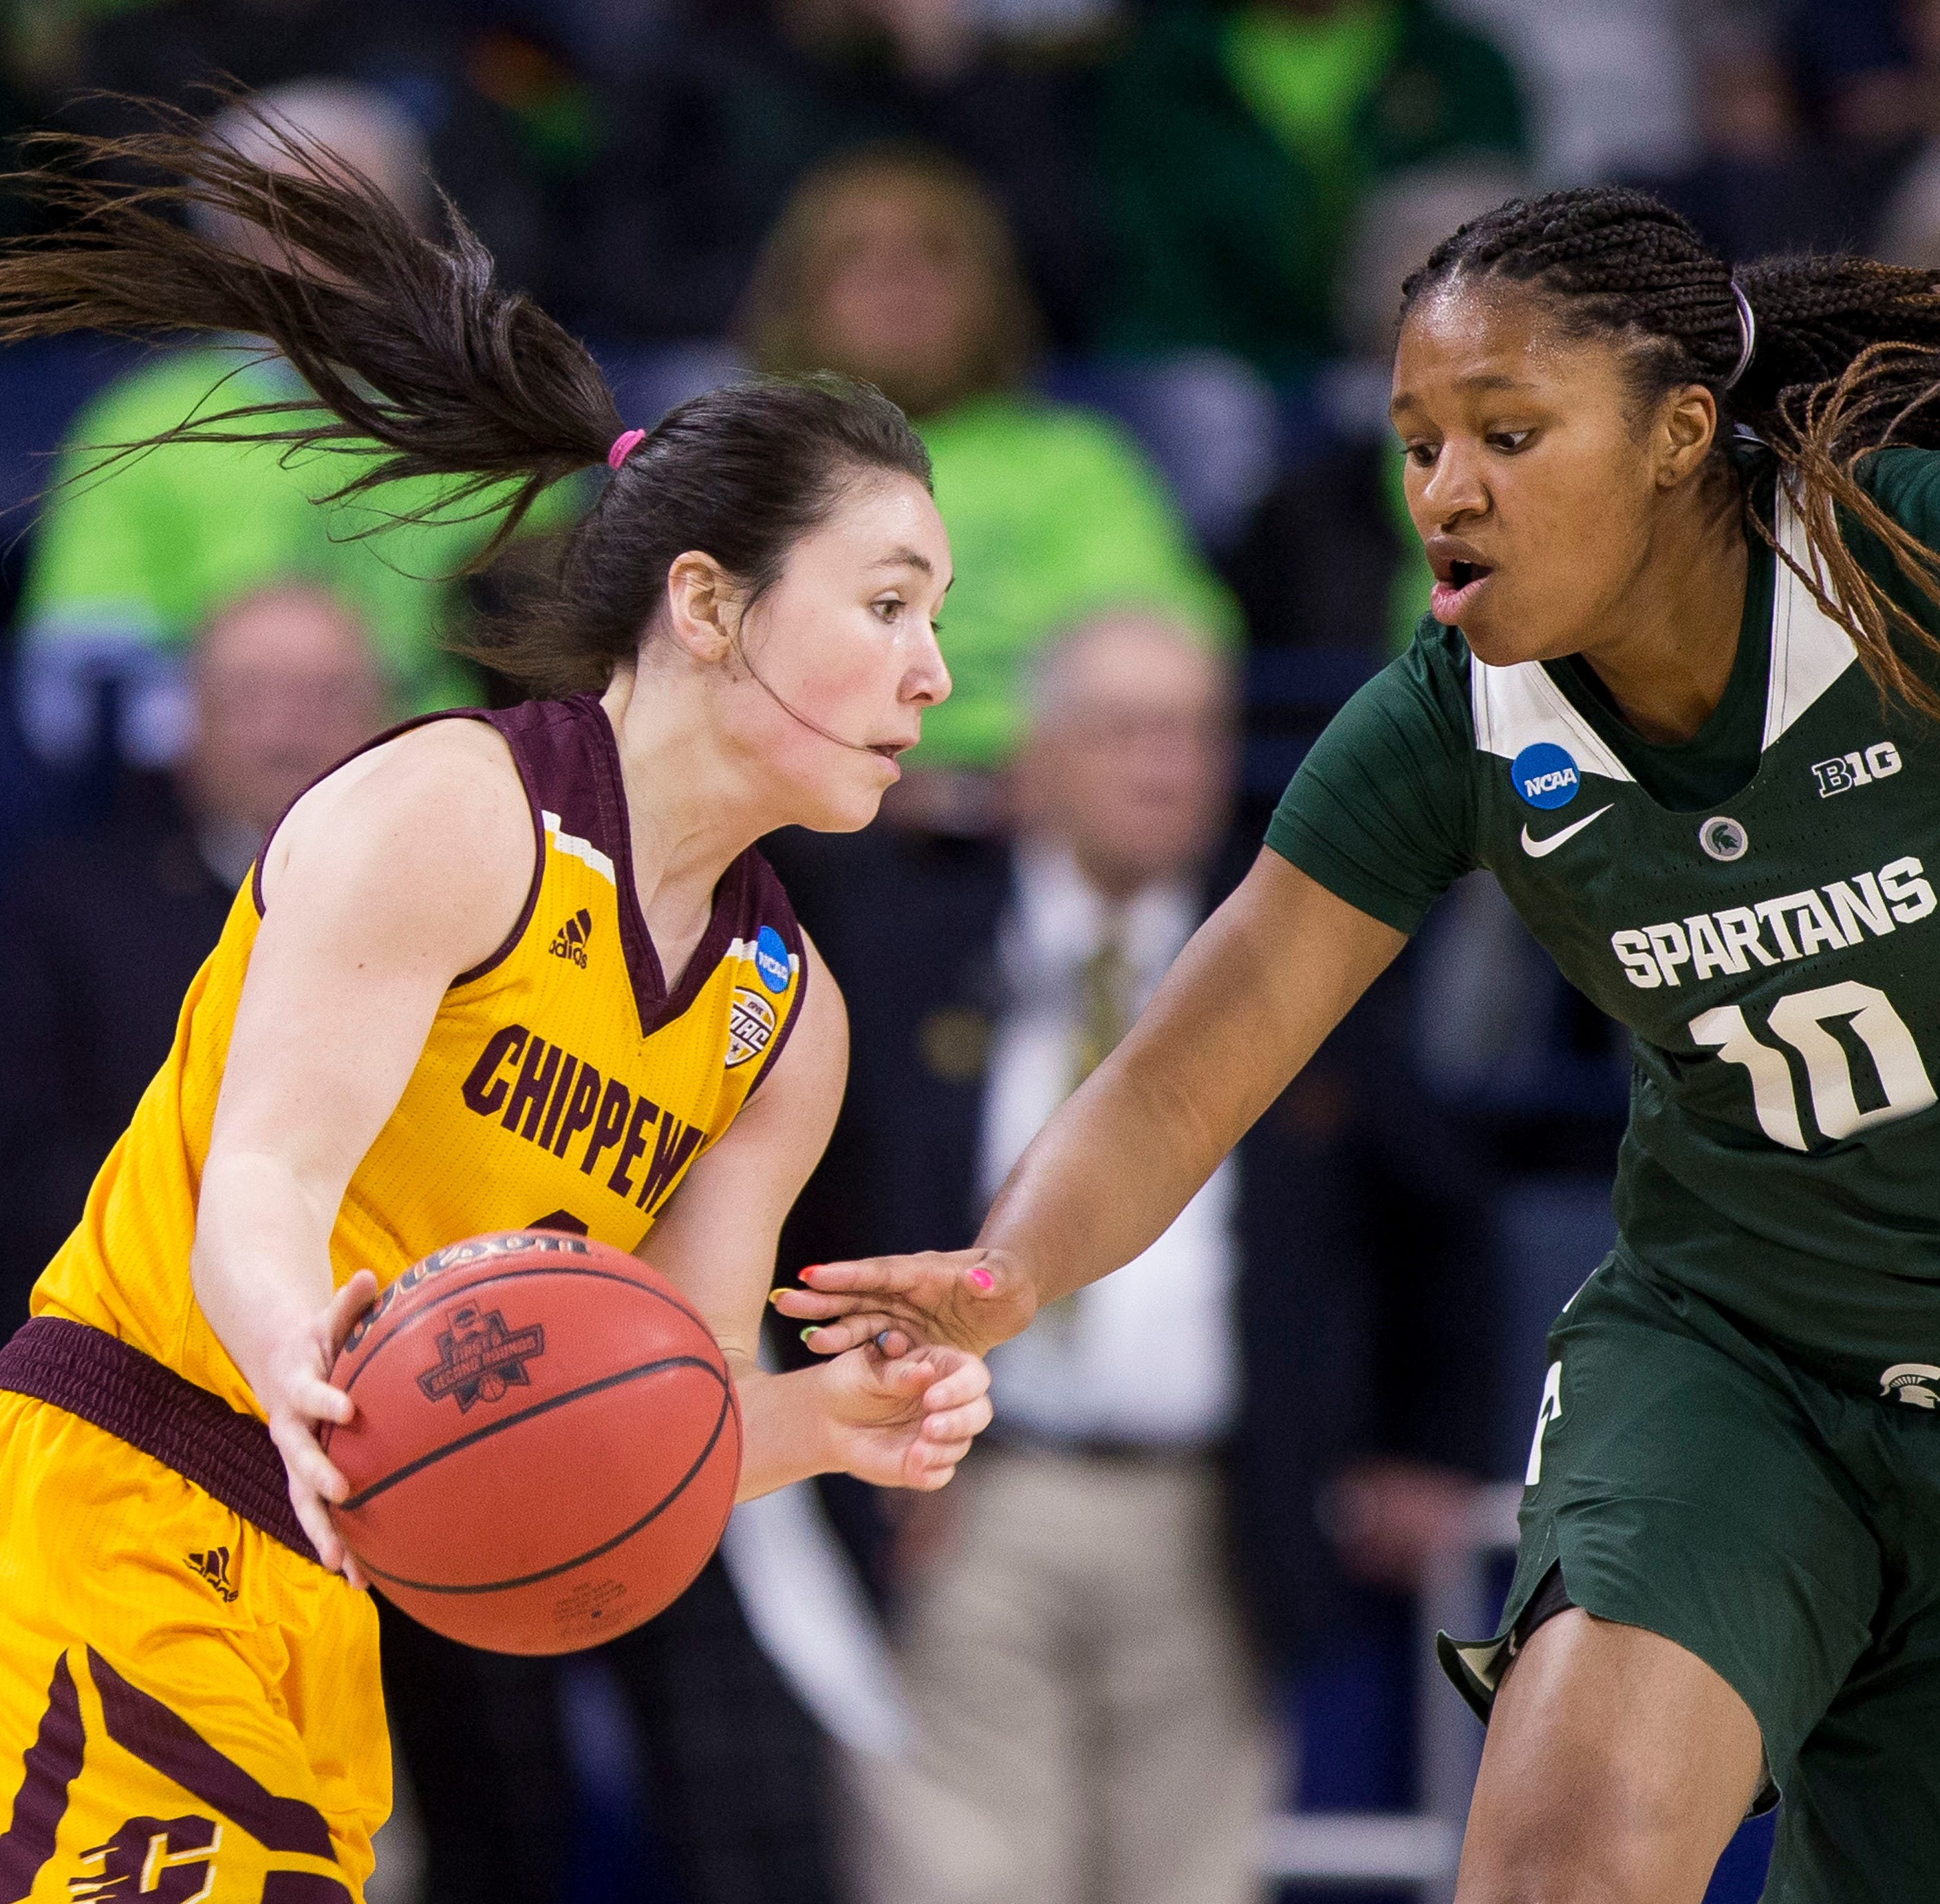 MSU women's basketball player Sidney Cooks transfers to Mississippi State